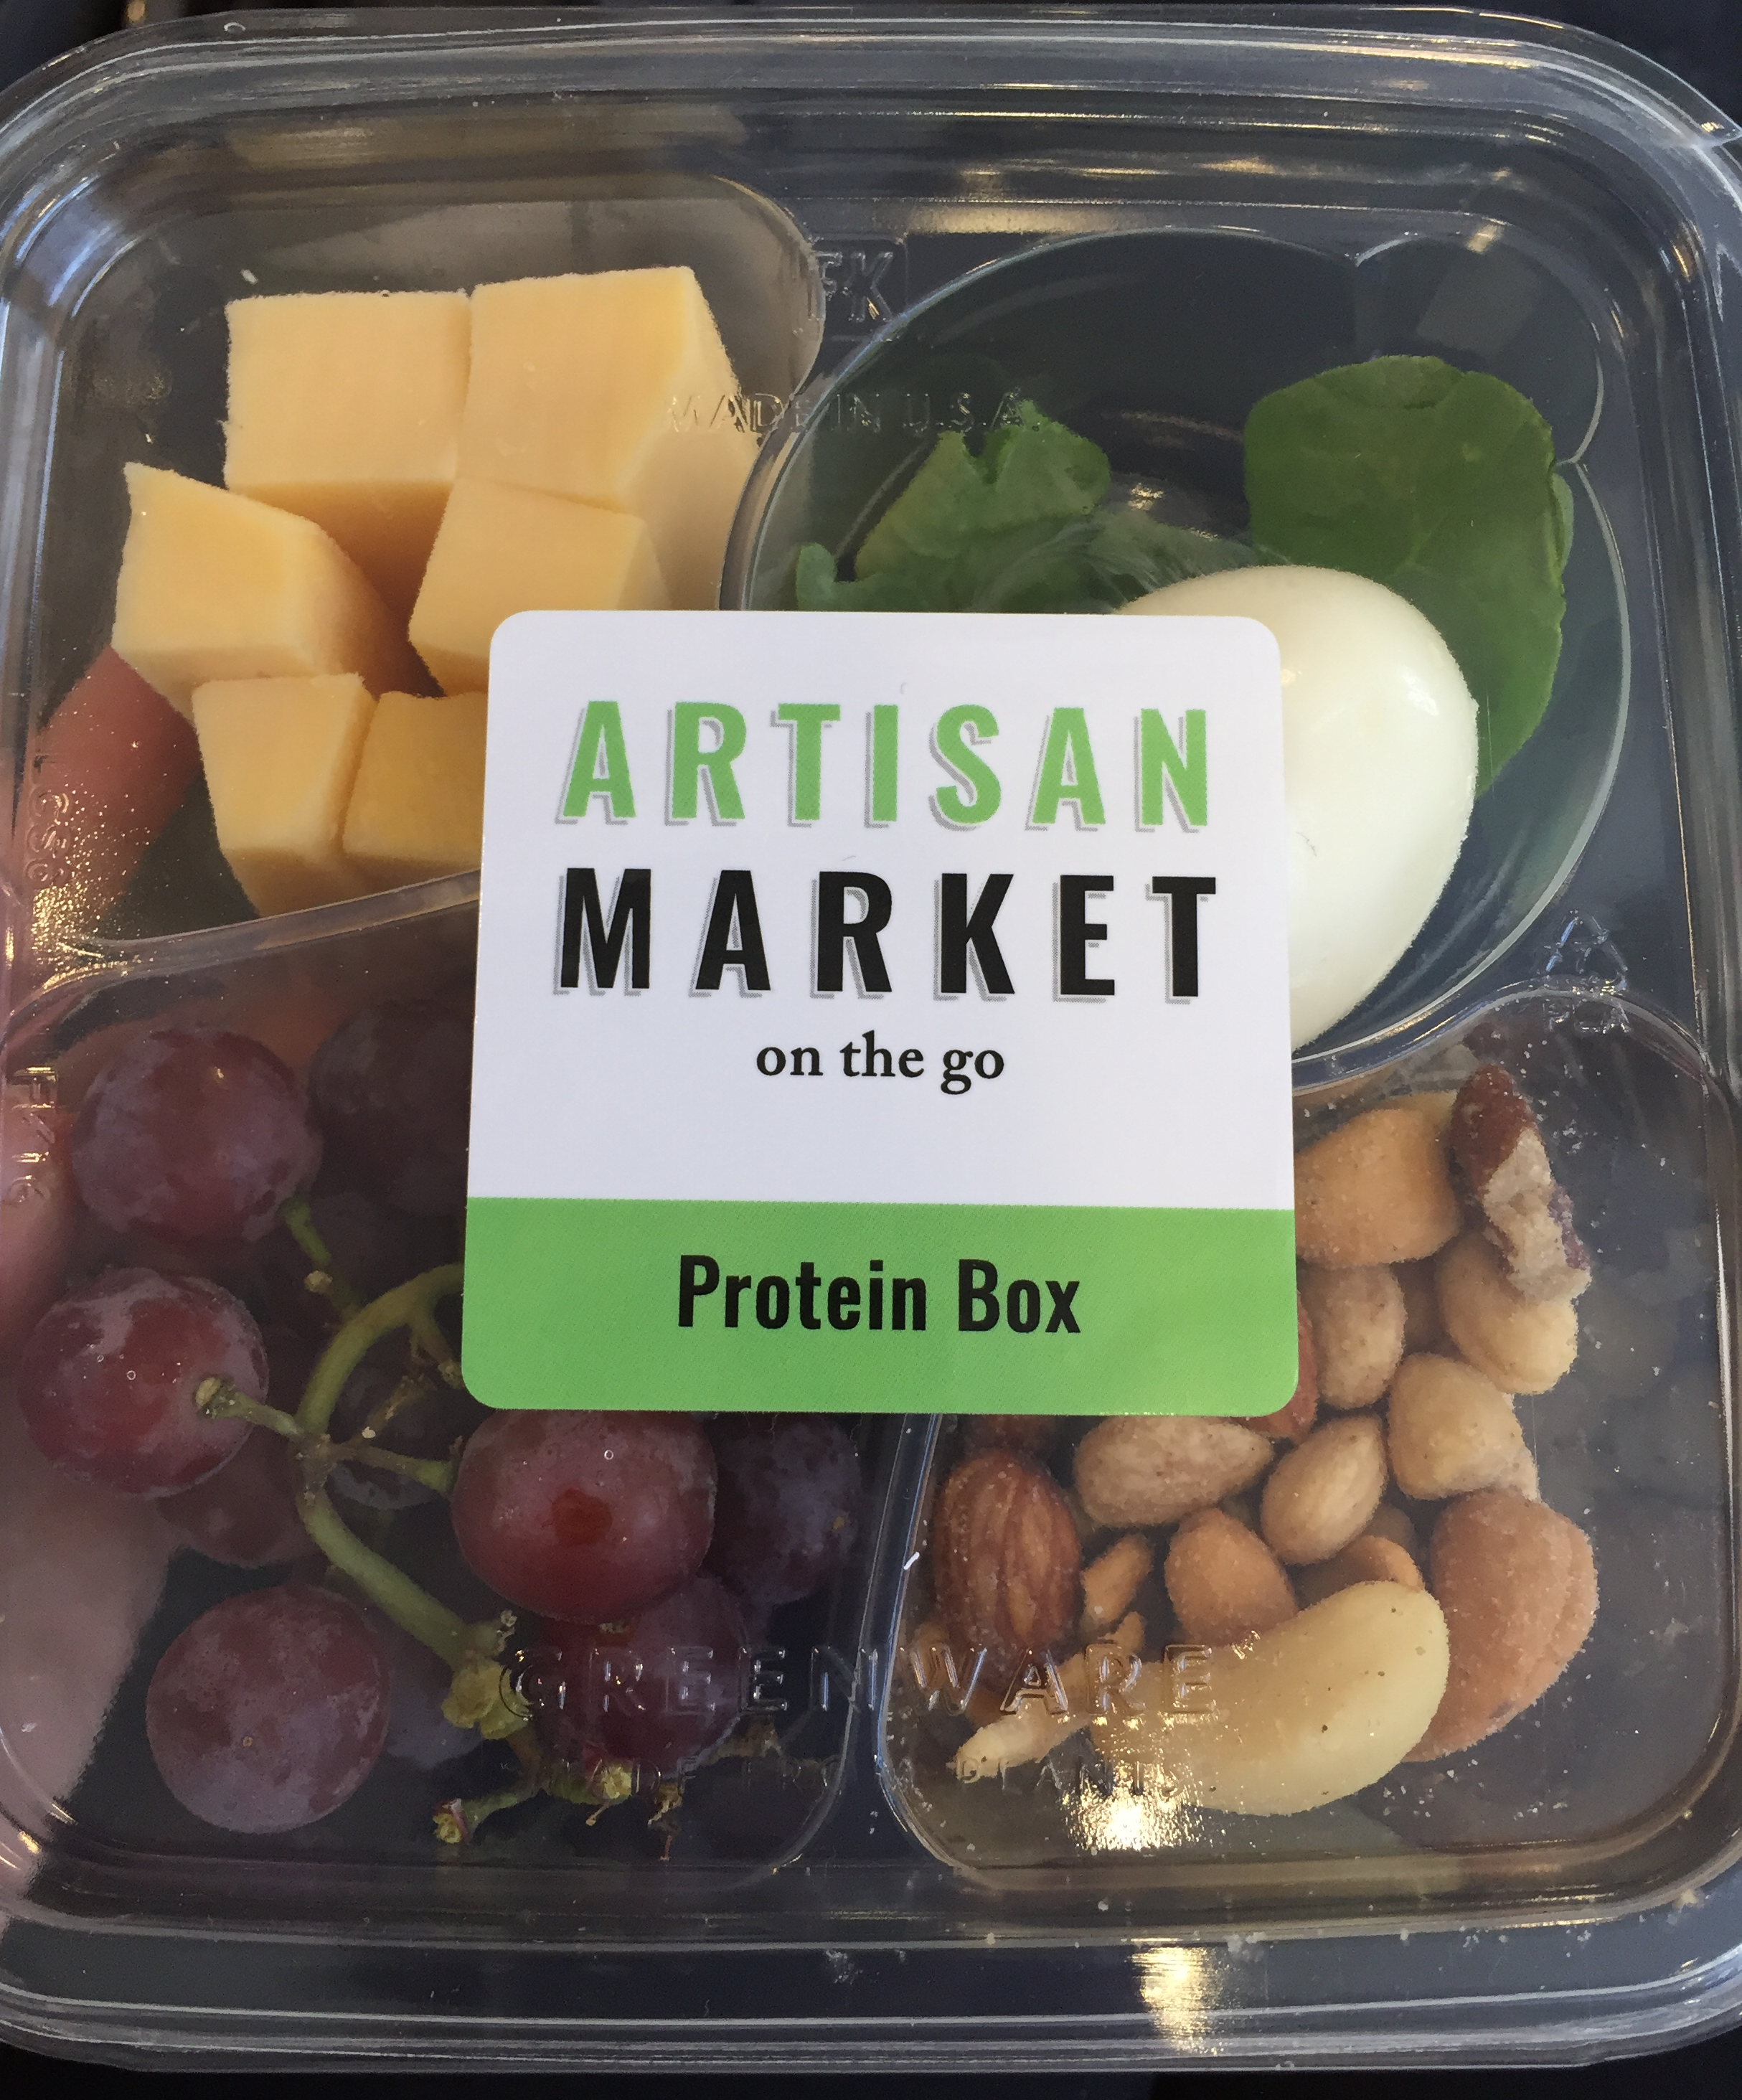 Protein boxes are packed with healthy fats, protein, and fruit.